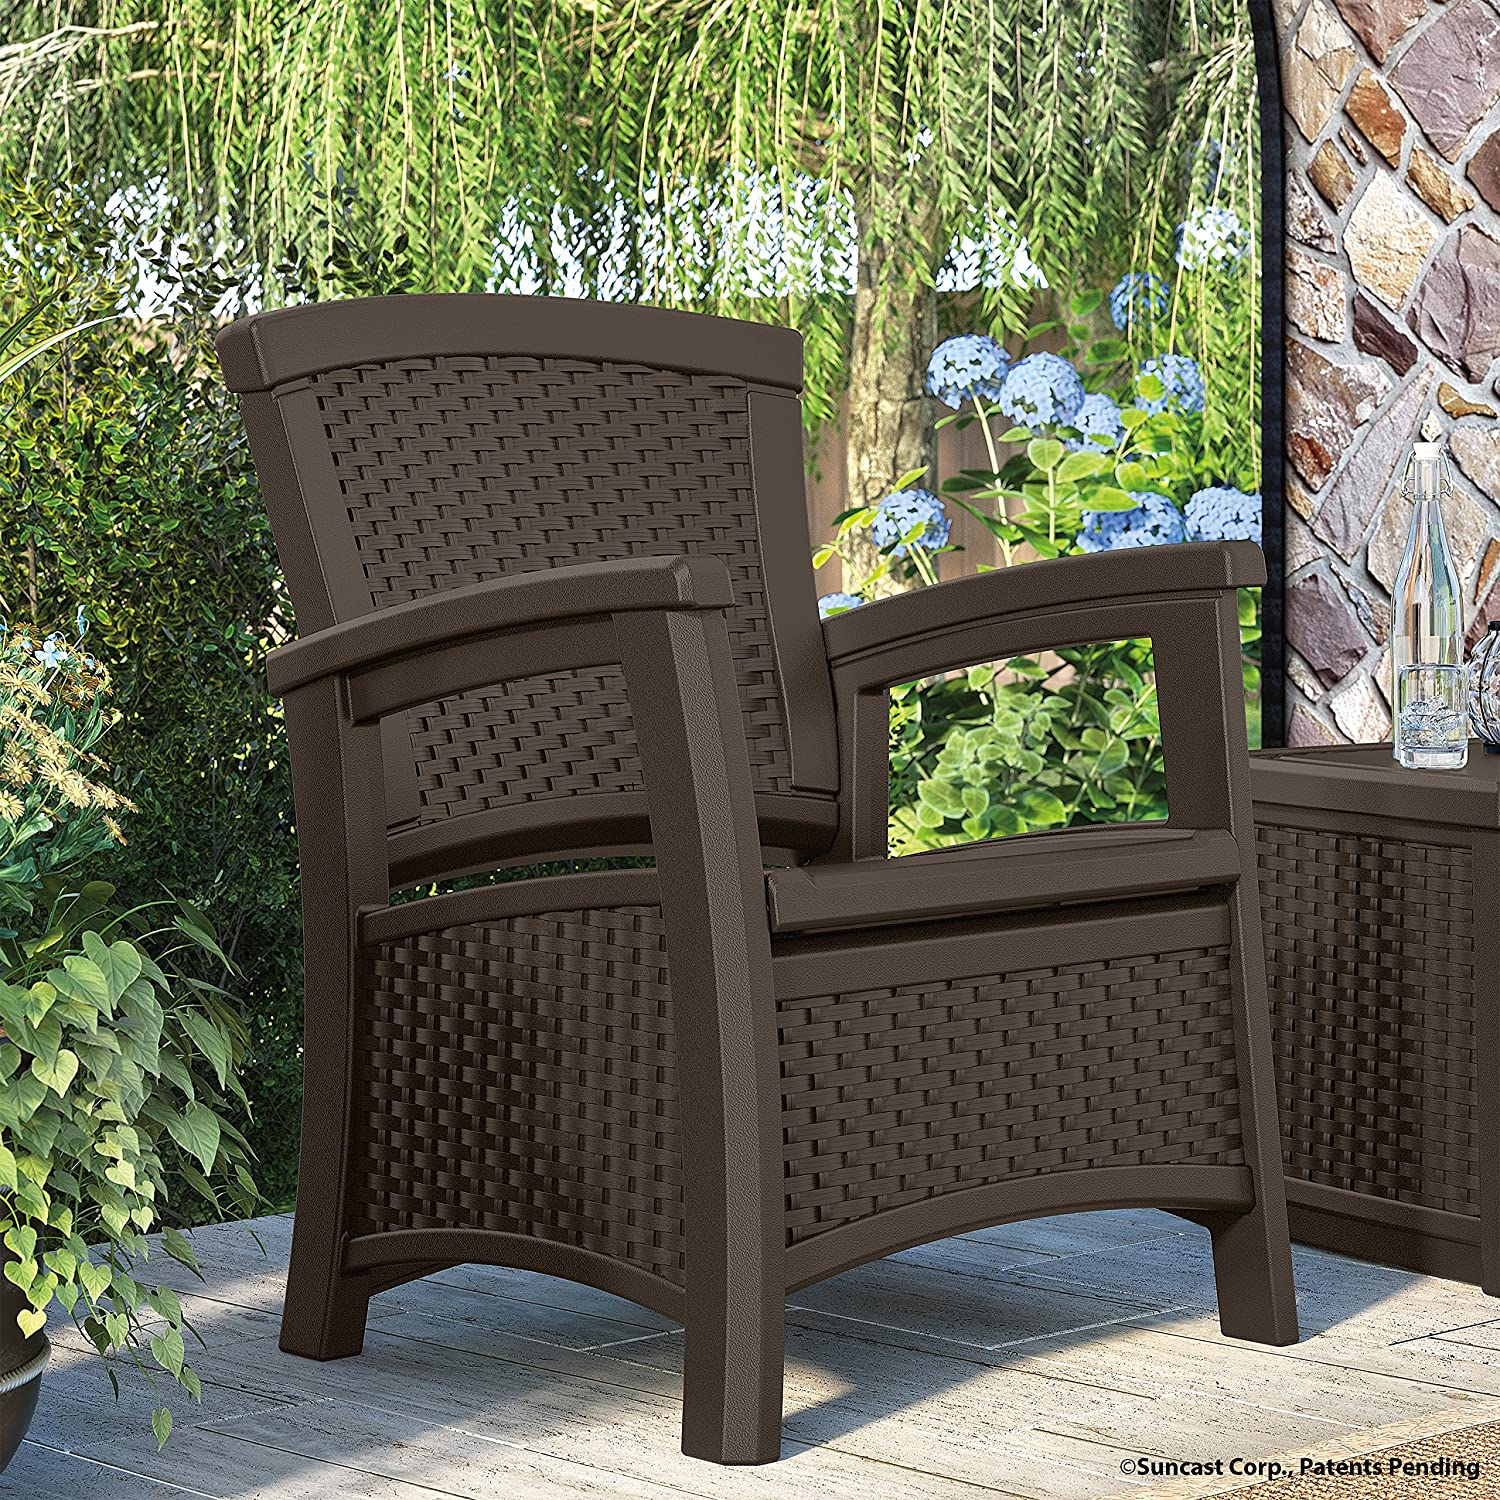 Amazon Suncast ELEMENTS Club Chair with Storage Java